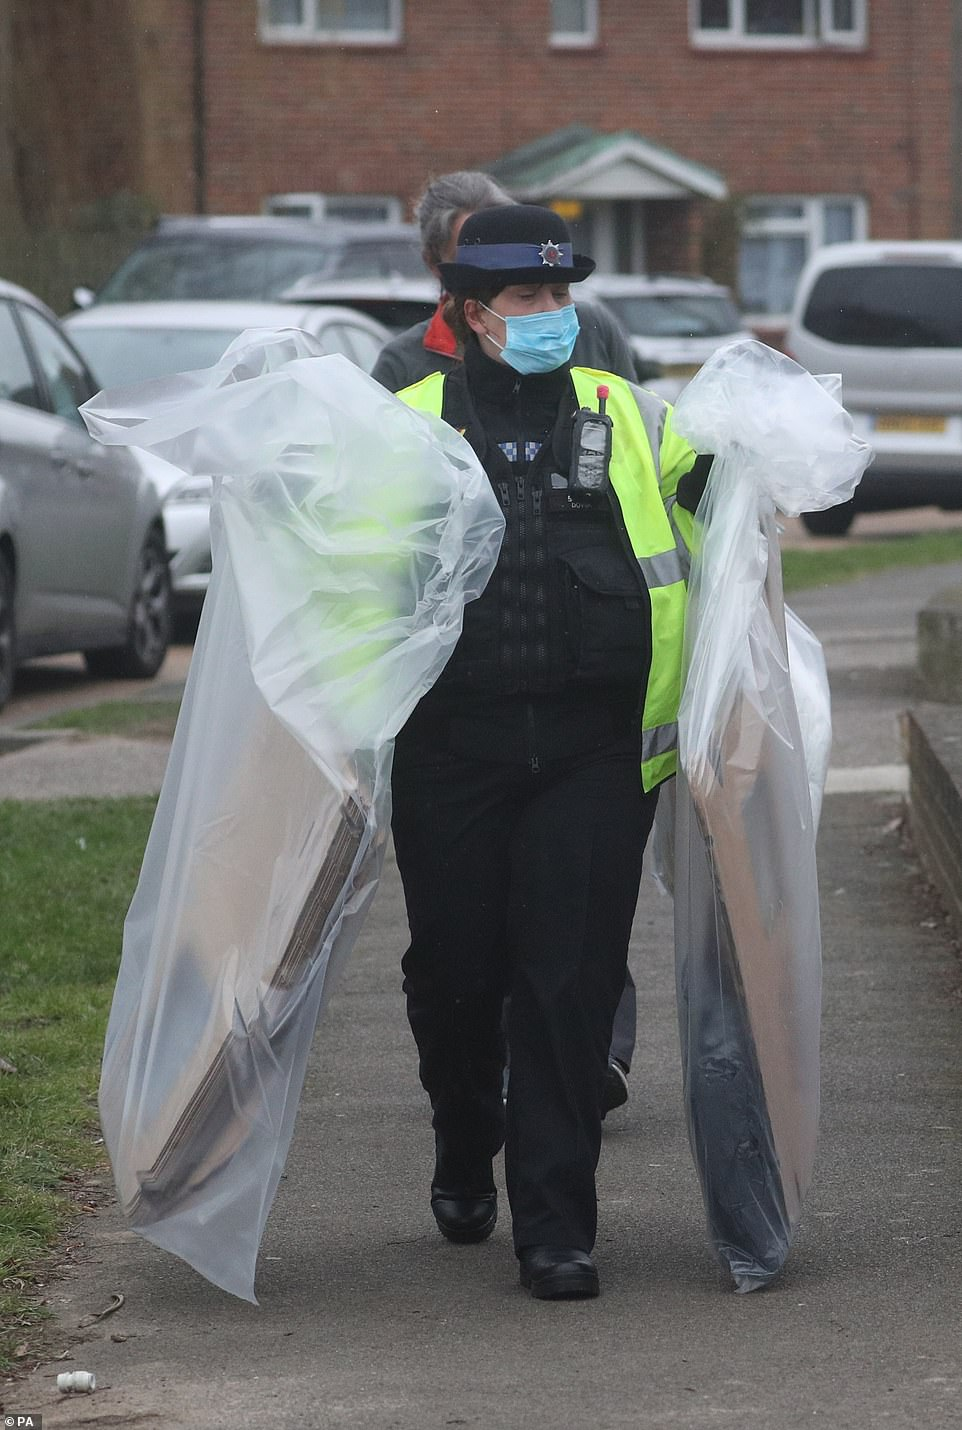 Police were seen taking away evidence in bags, including what appeared to be a laptop in the right plastic sack